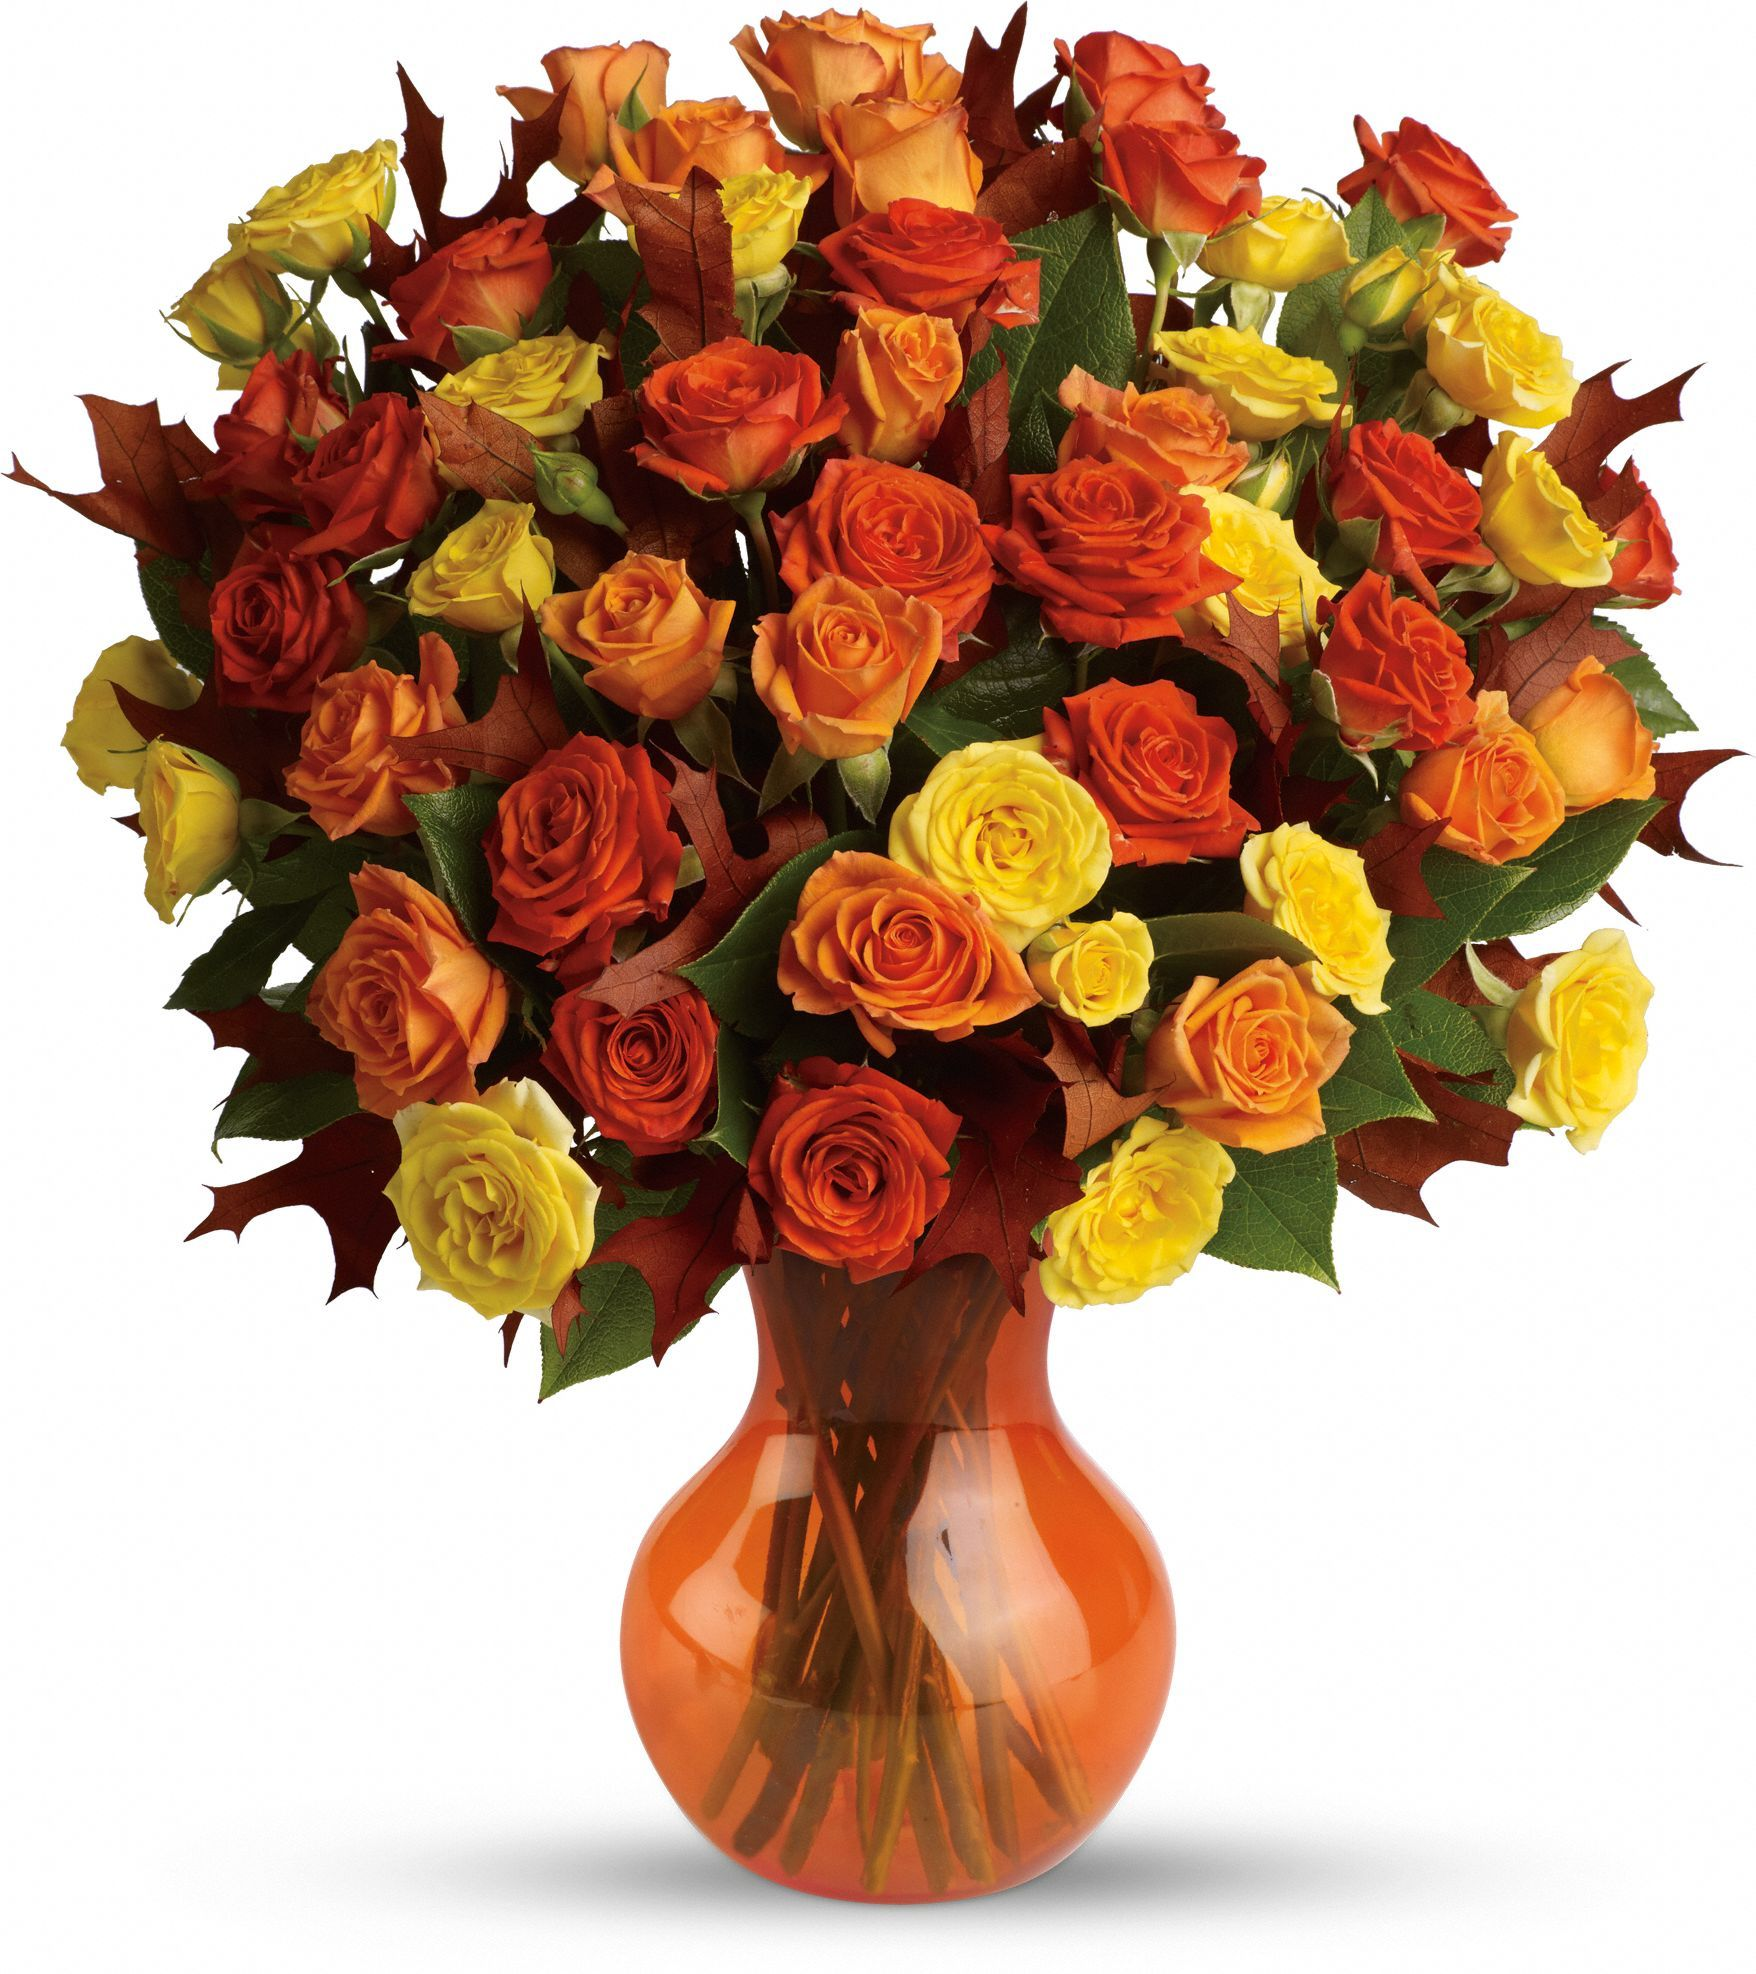 Telefloras fabulous fall roses fall flower arrangements telefloras fabulous fall roses flowers natural amber comes in every shade of gold and this striking display of fresh spray roses in autumns favorite izmirmasajfo